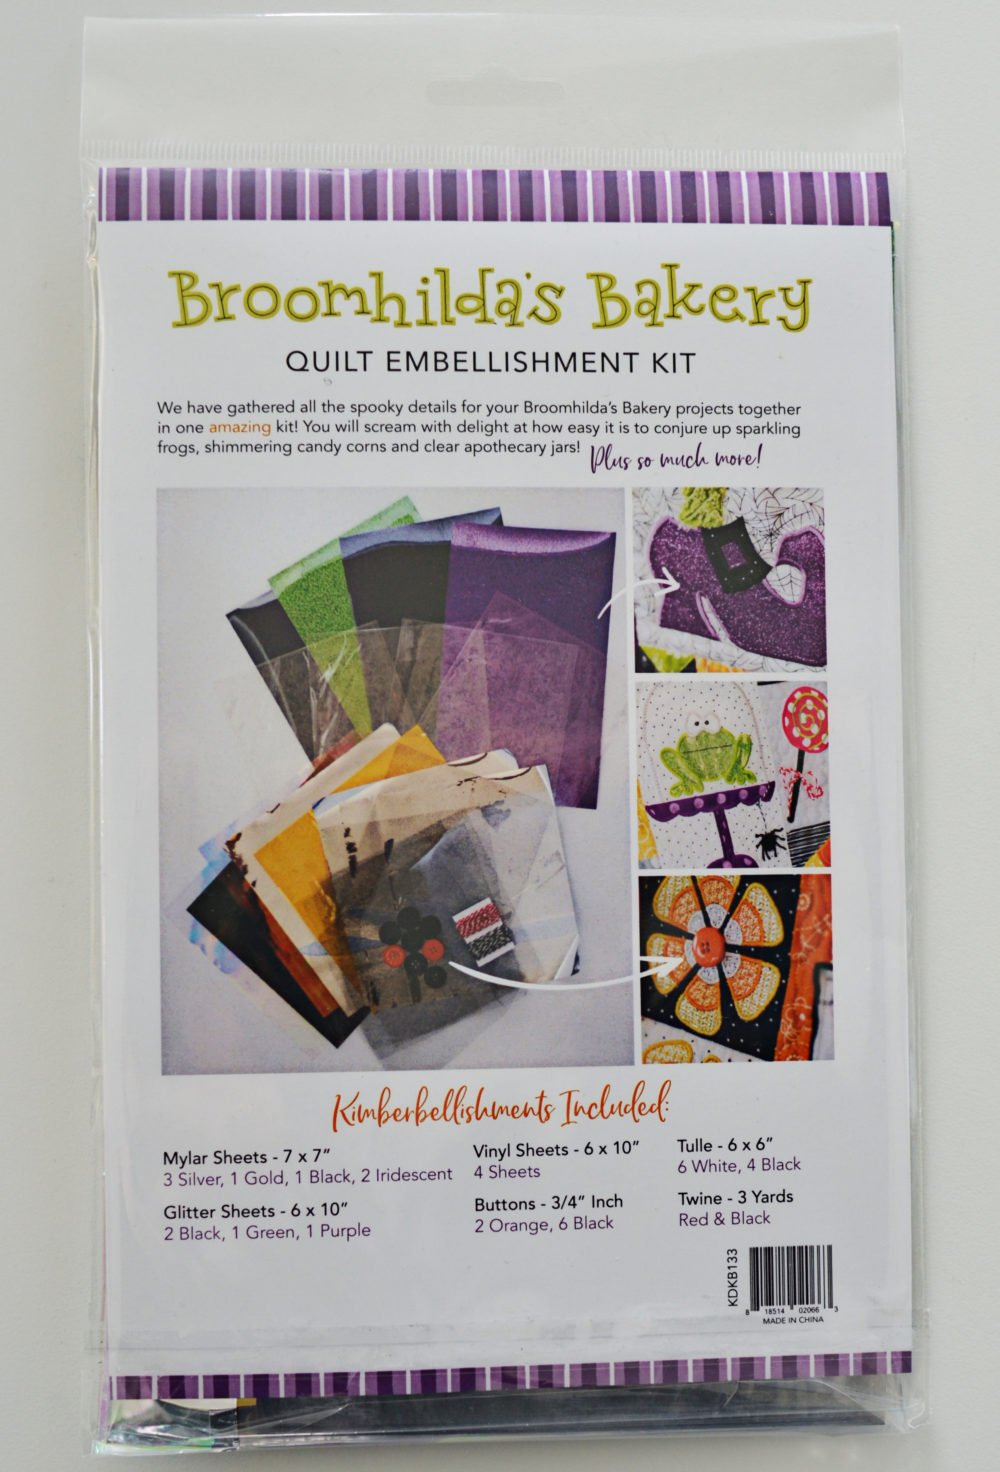 Kimberbell - Broomhilda's Bakery Embellishment Kit